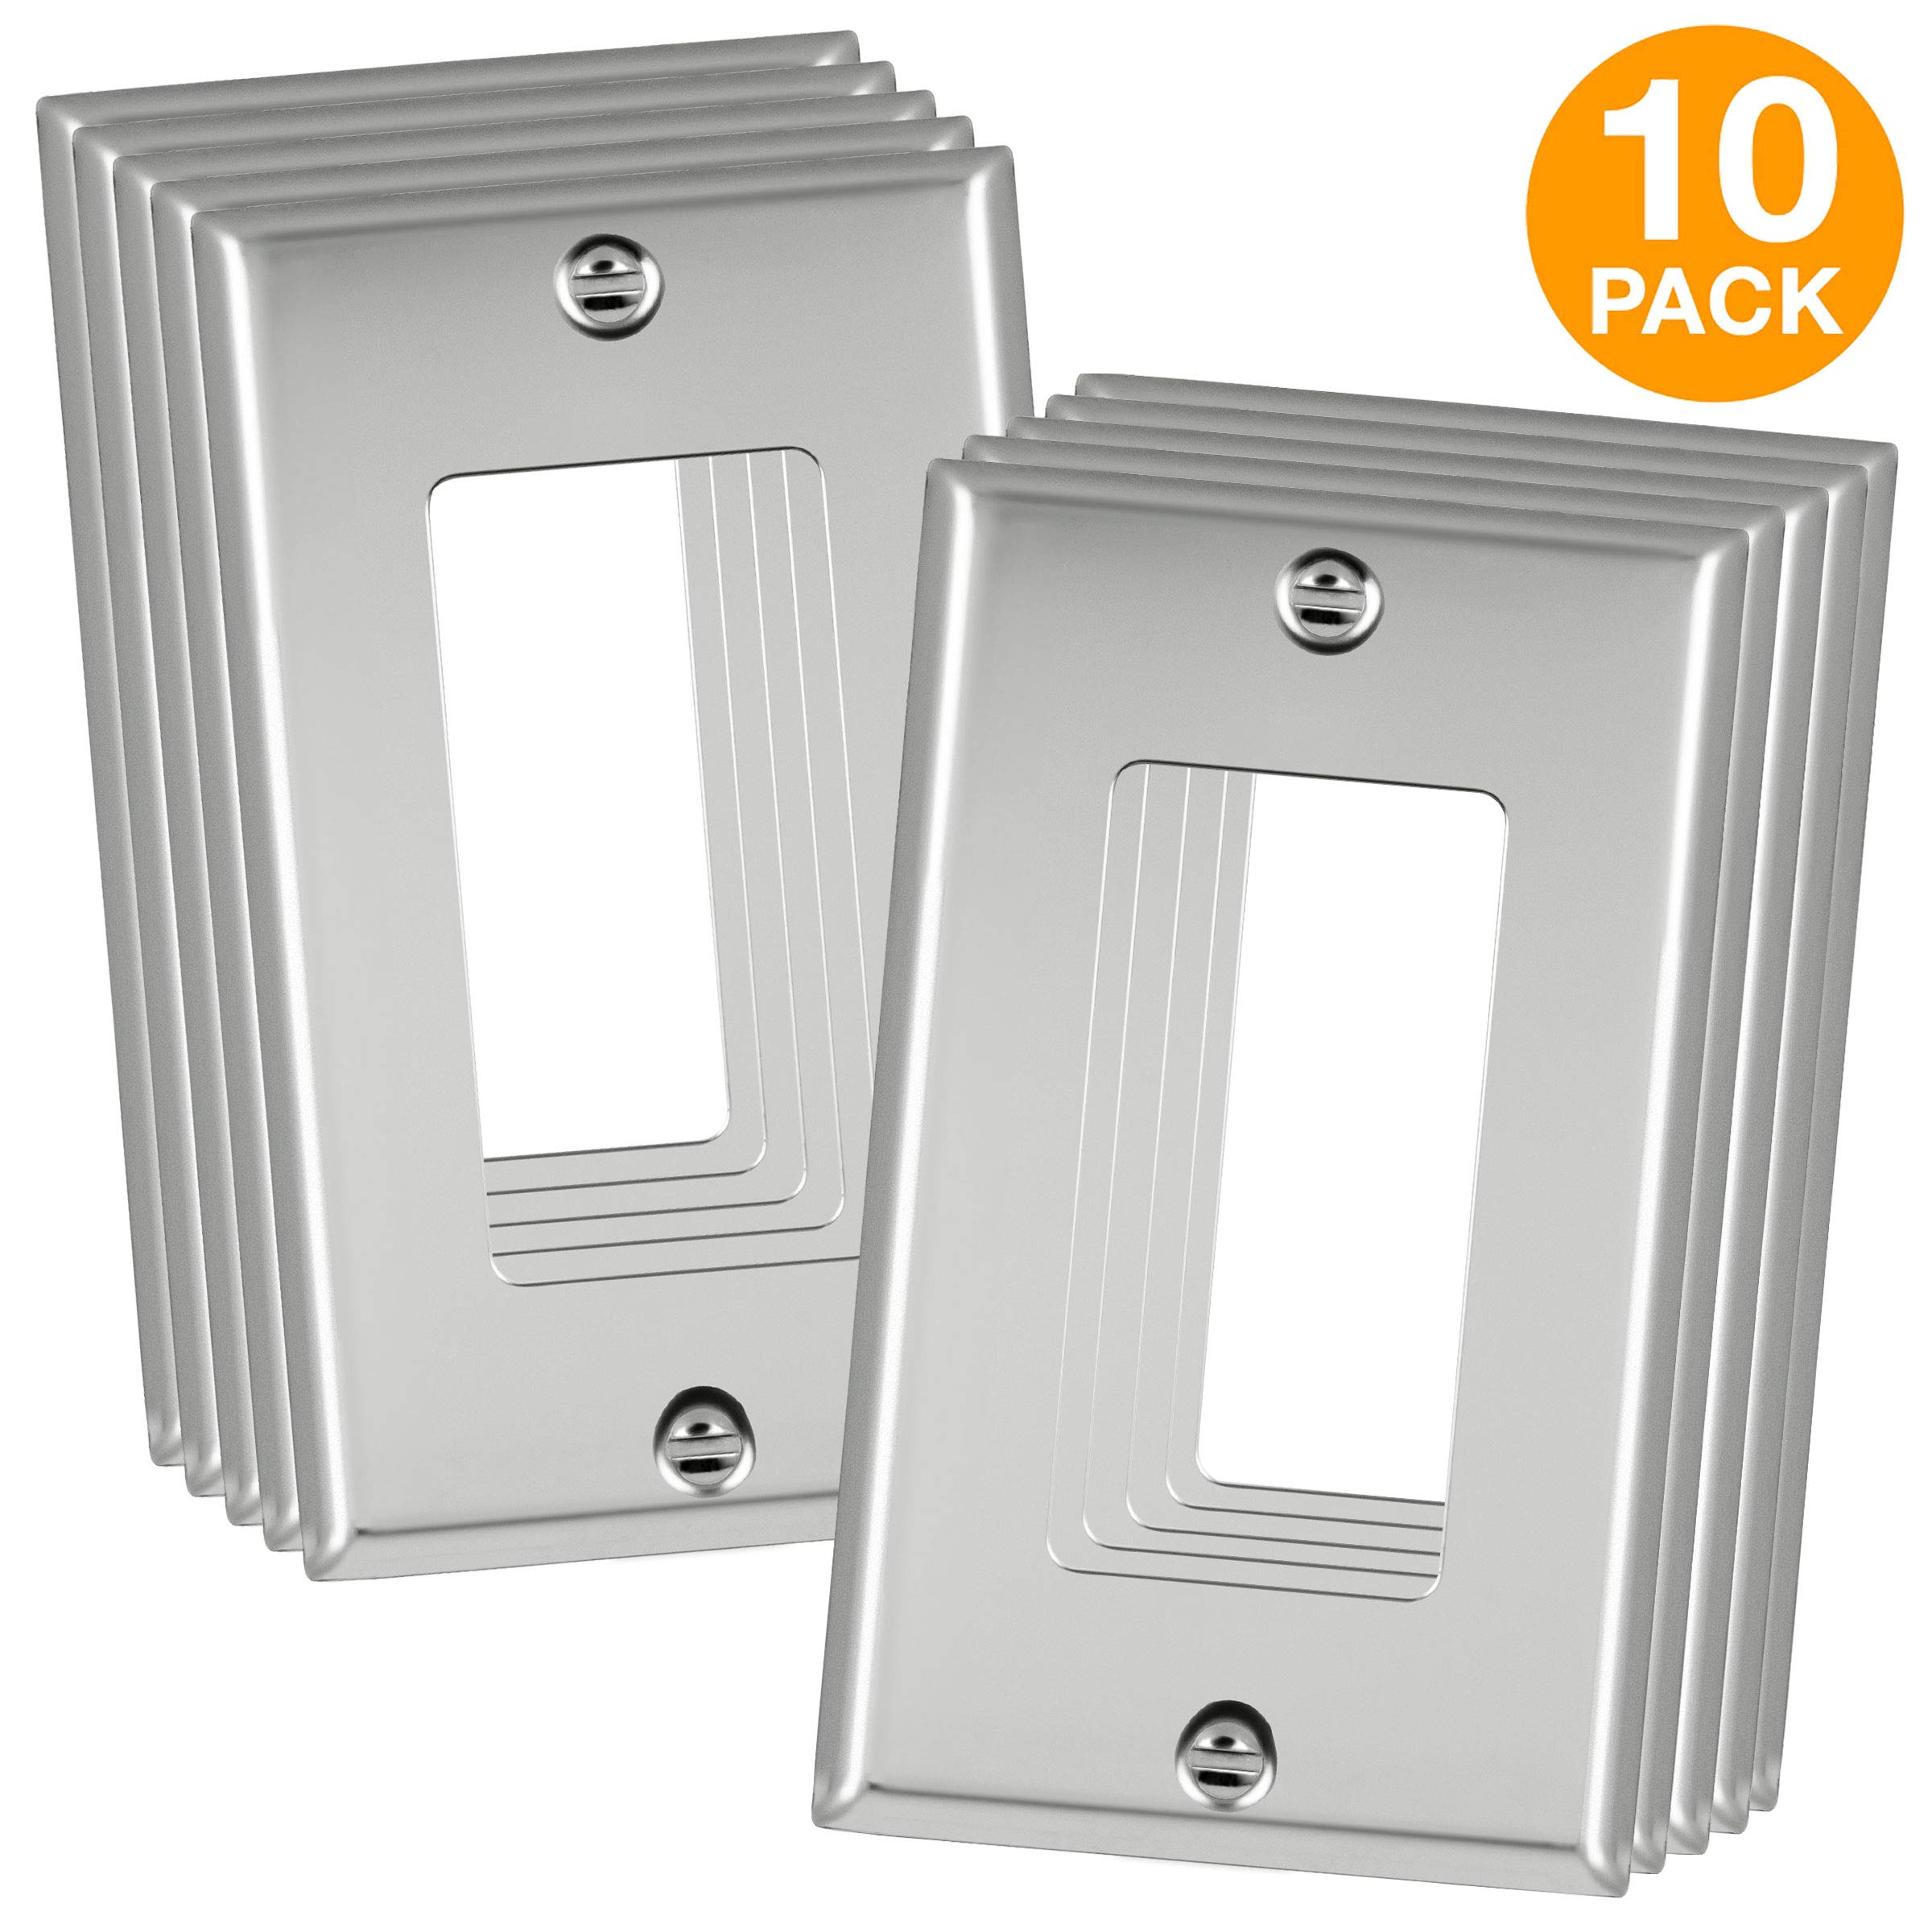 ENERLITES Decorator Switch/Outlet Metal Wall Plate, Corrosive Resistant, Size 1-Gang 4.50'' x 2.76'', 7731-PC-10PCS, 302 Polished Chrome (10 Pack)